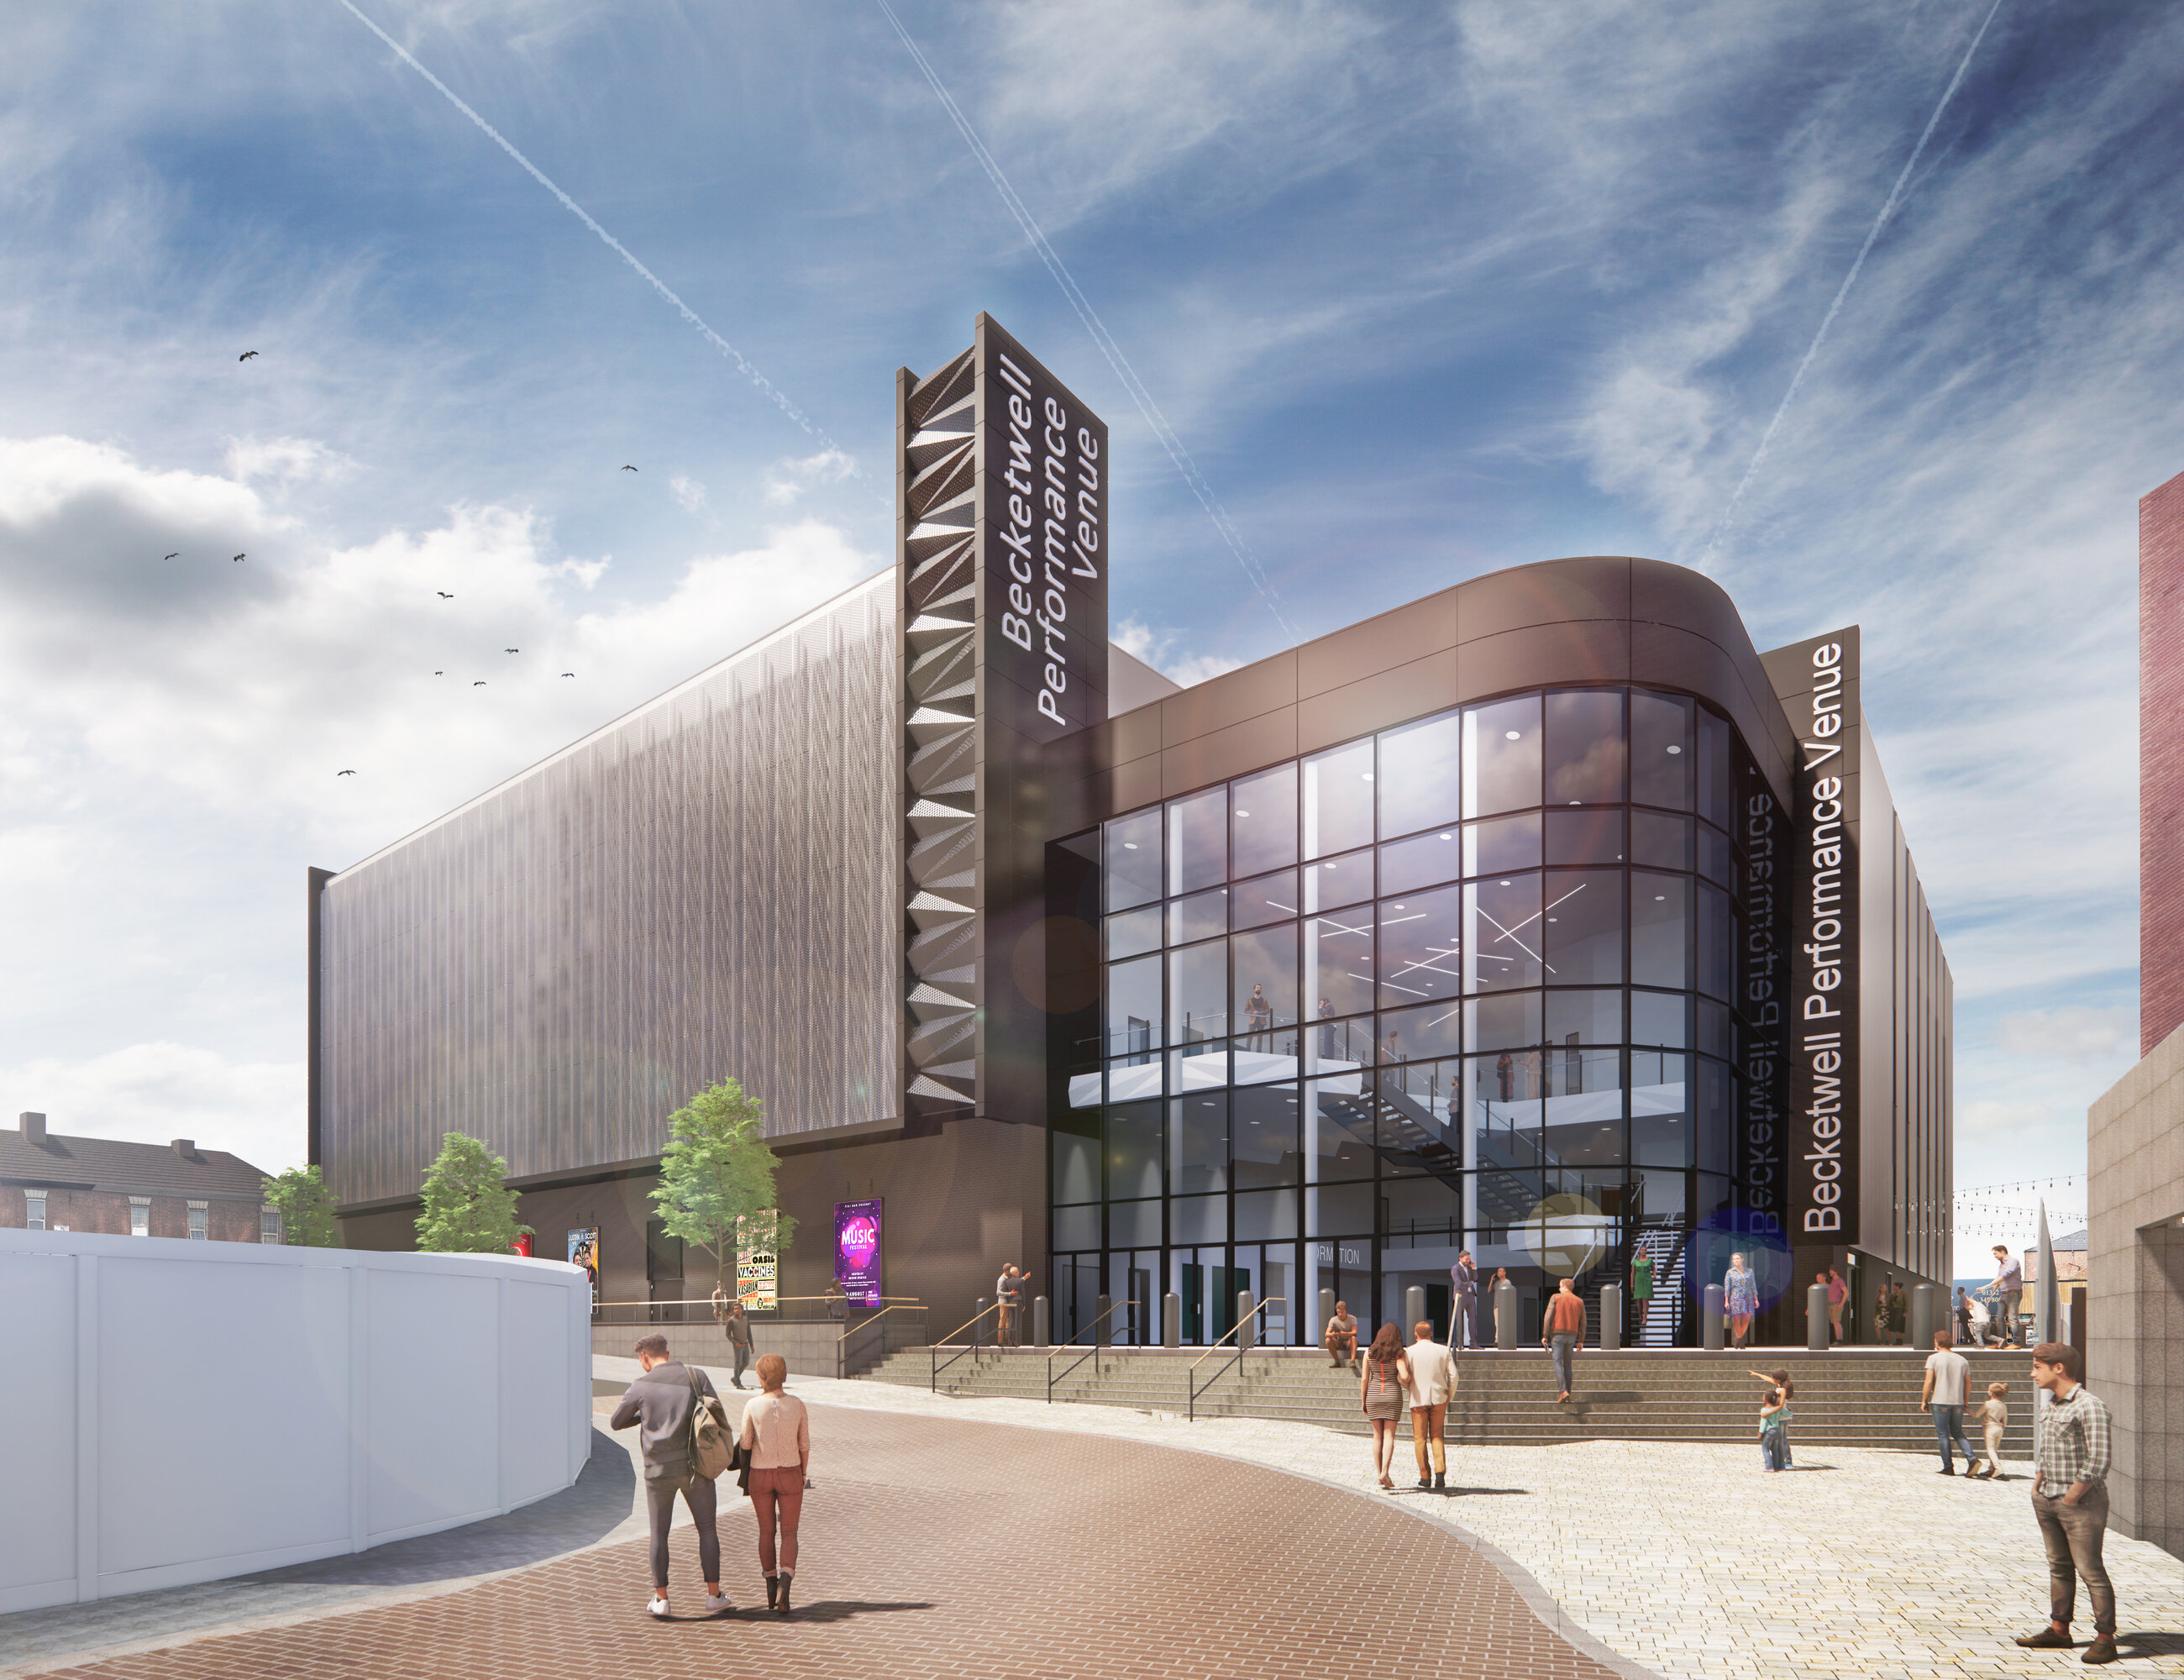 Planning consent granted for groundbreaking Becketwell Performance Venue